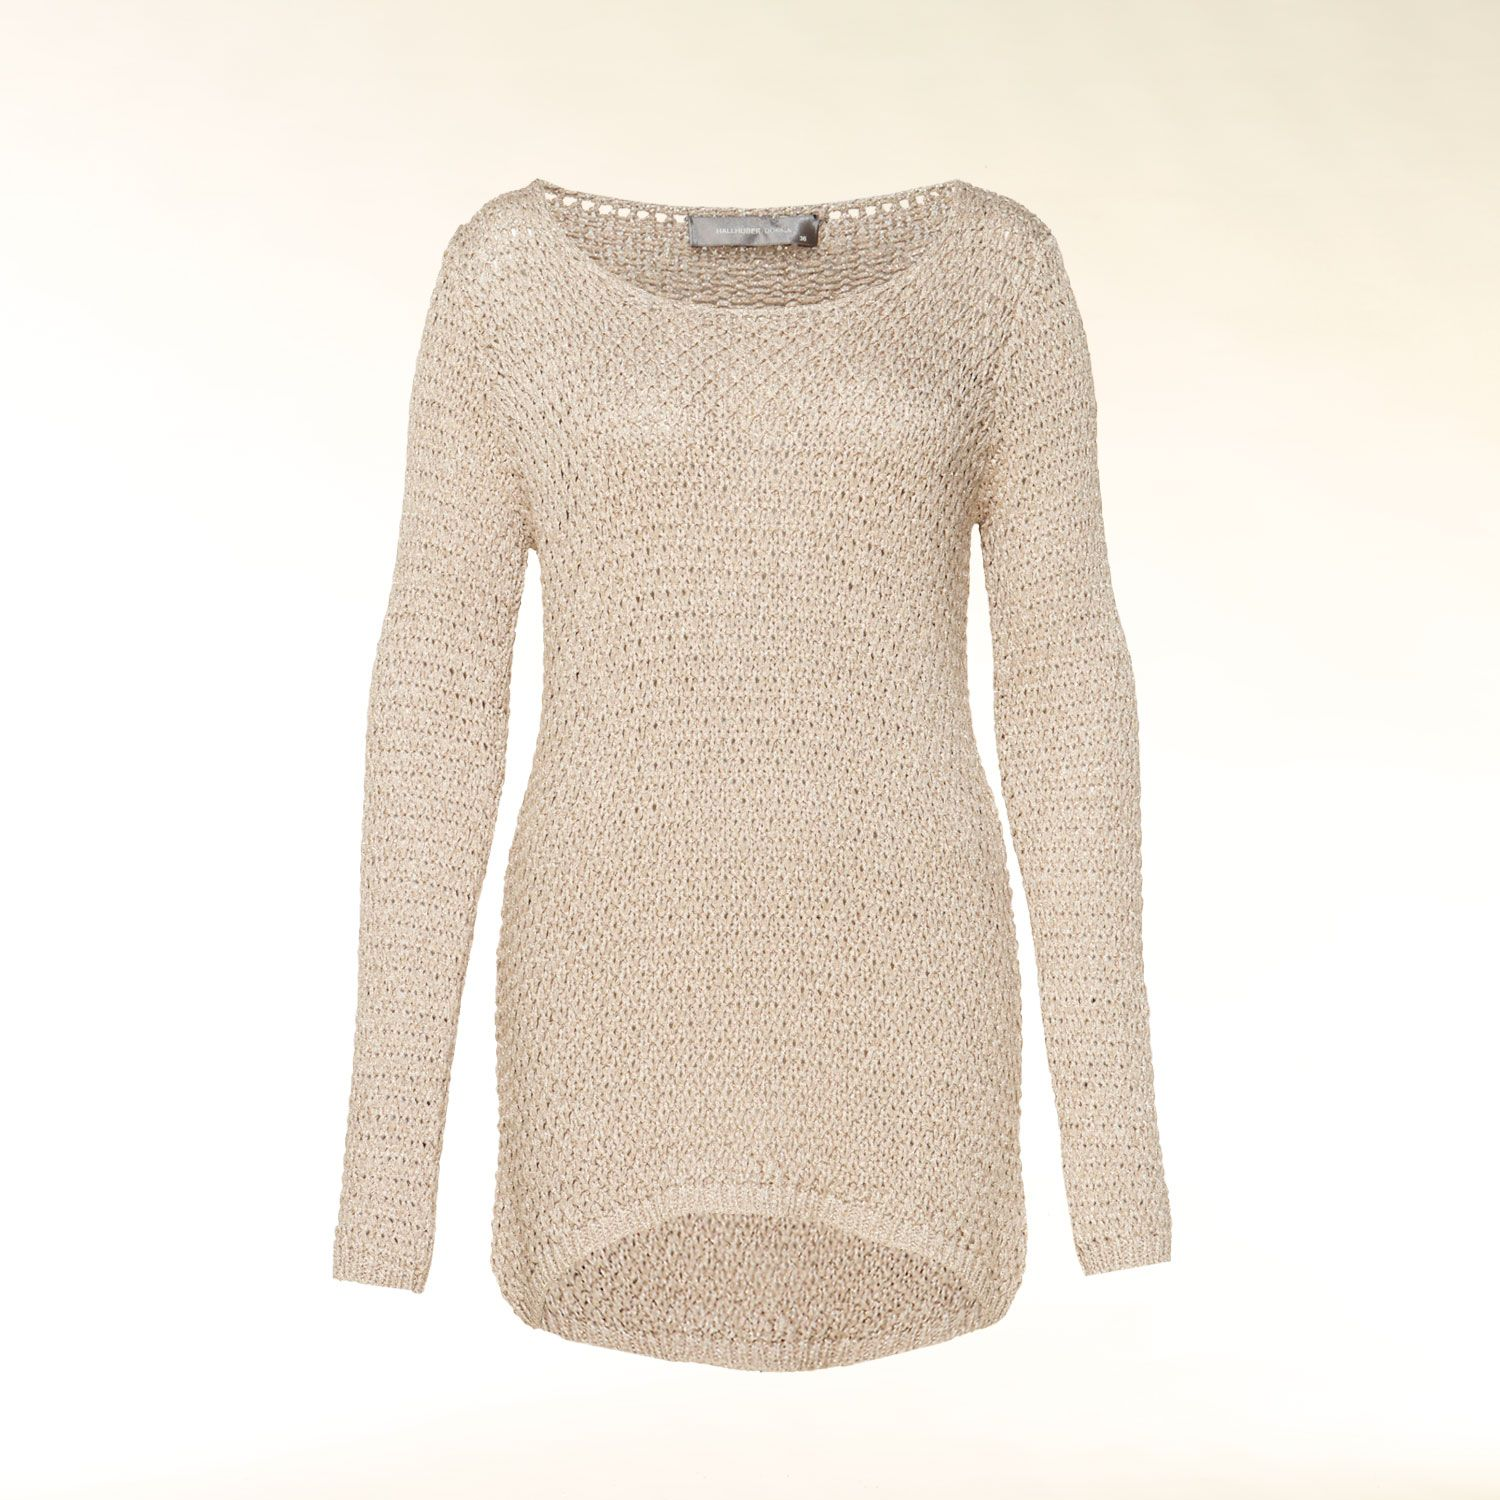 Metallic knit tunic